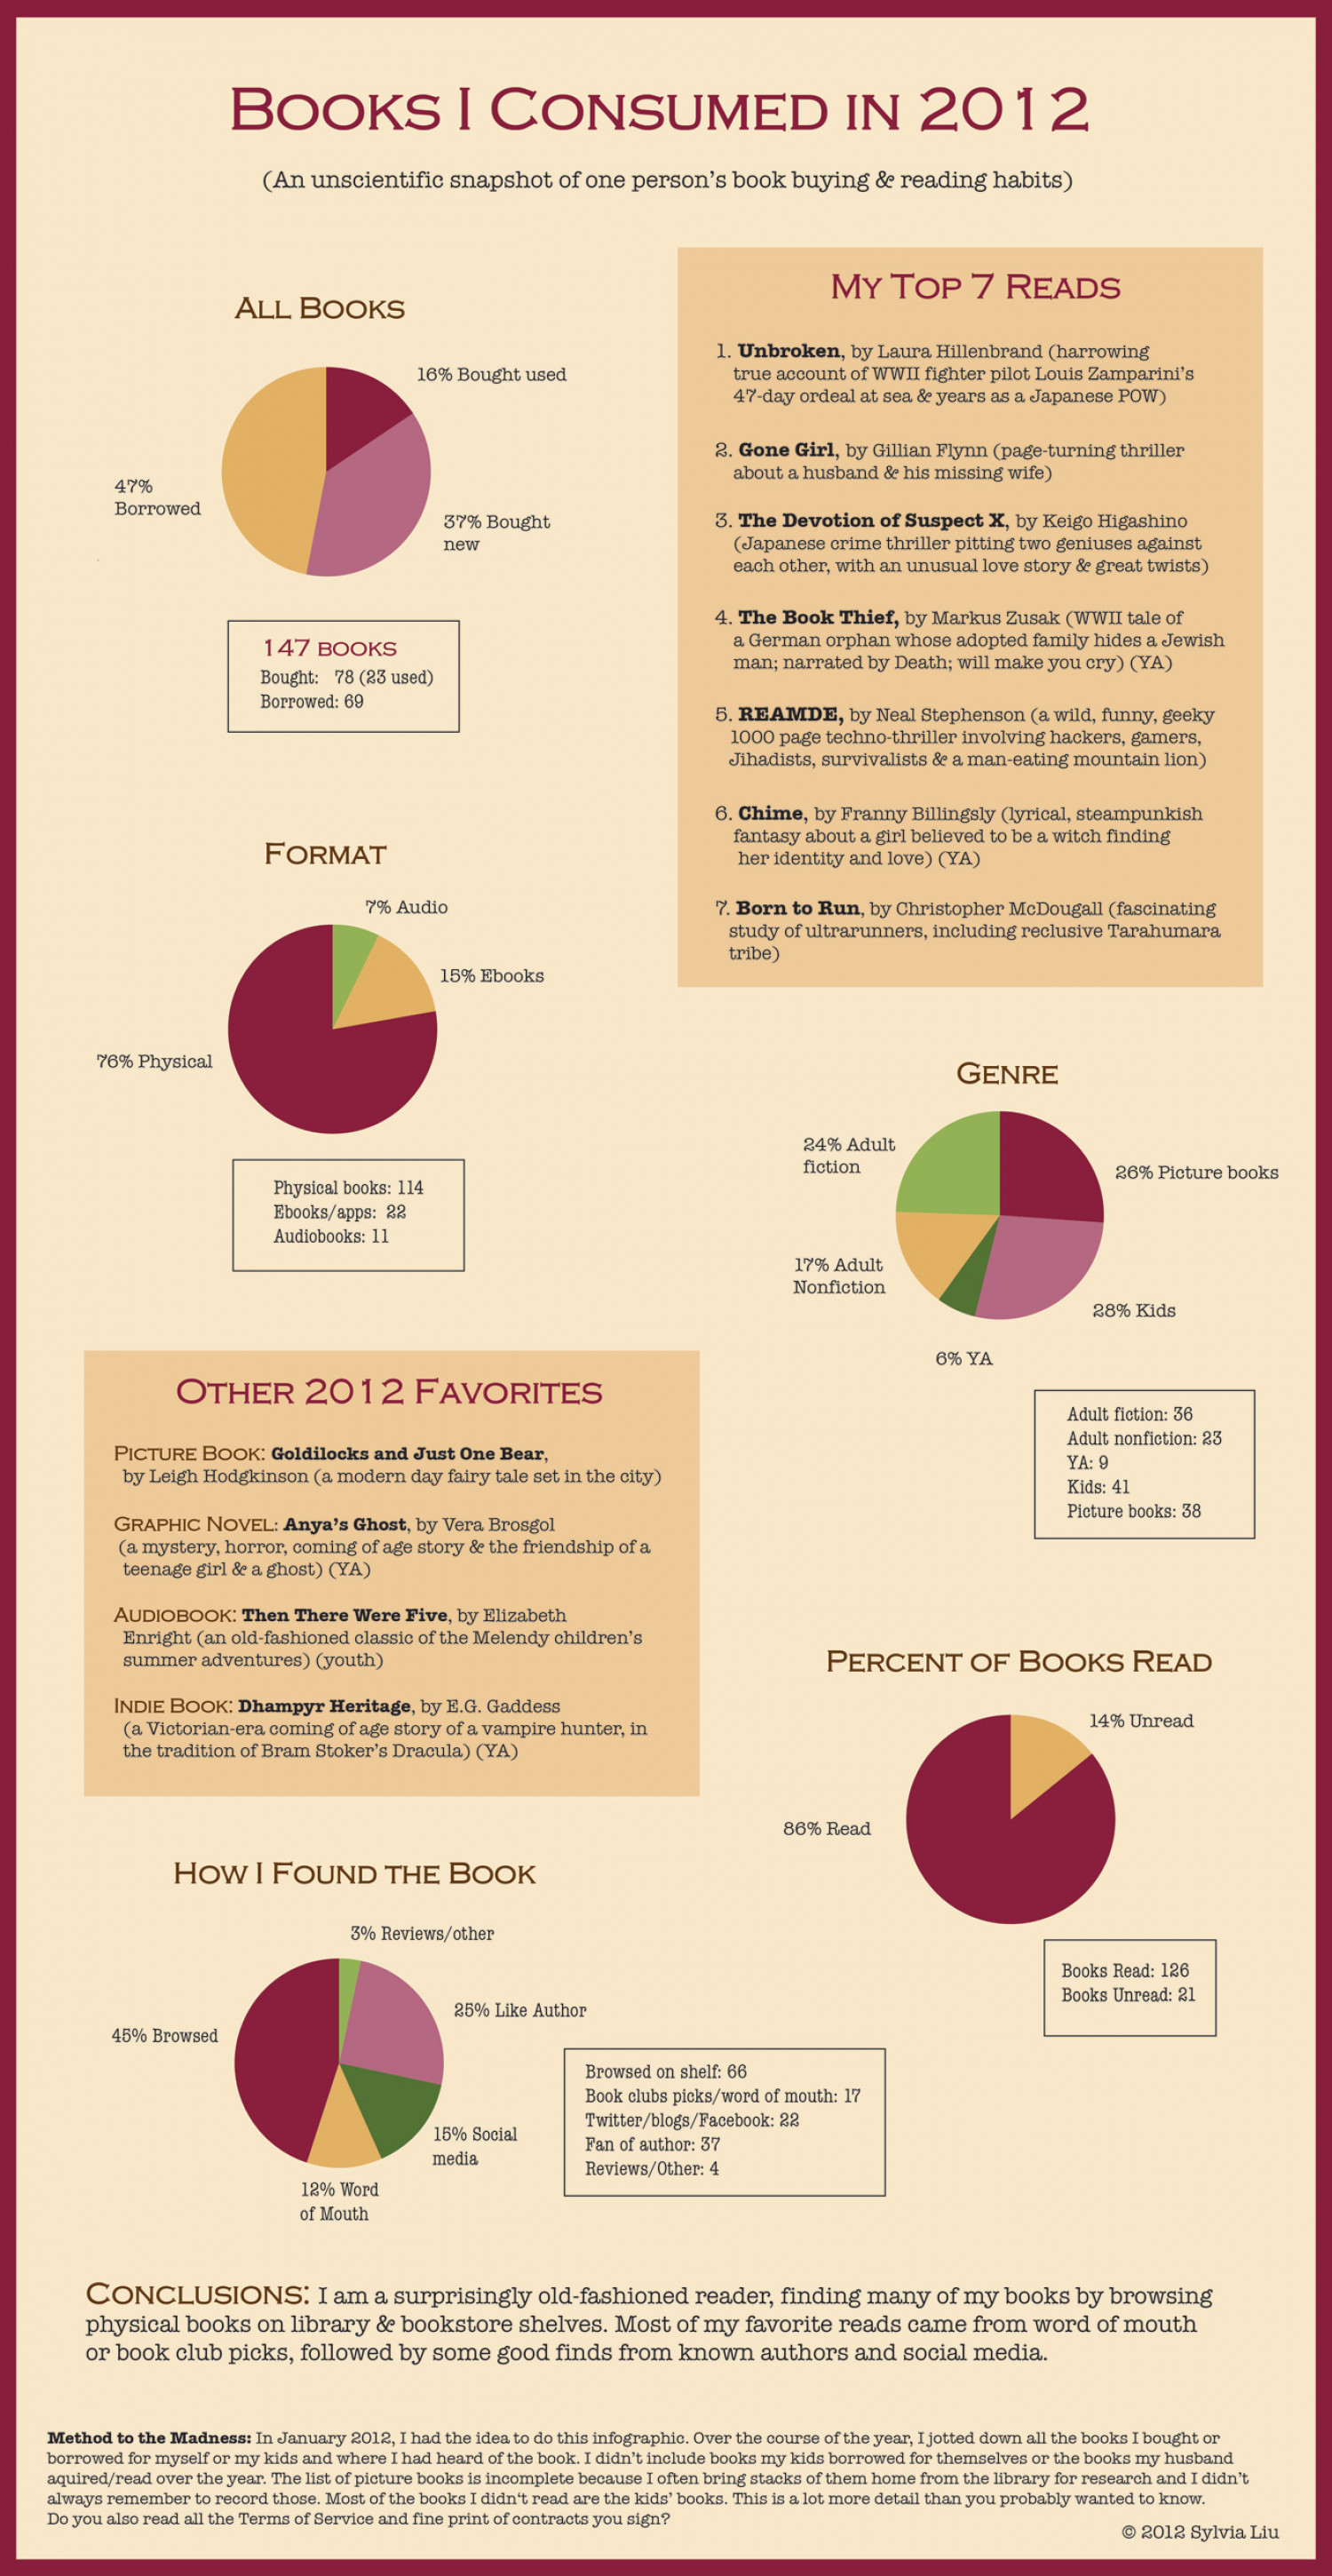 Books I Read in 2012 Infographic